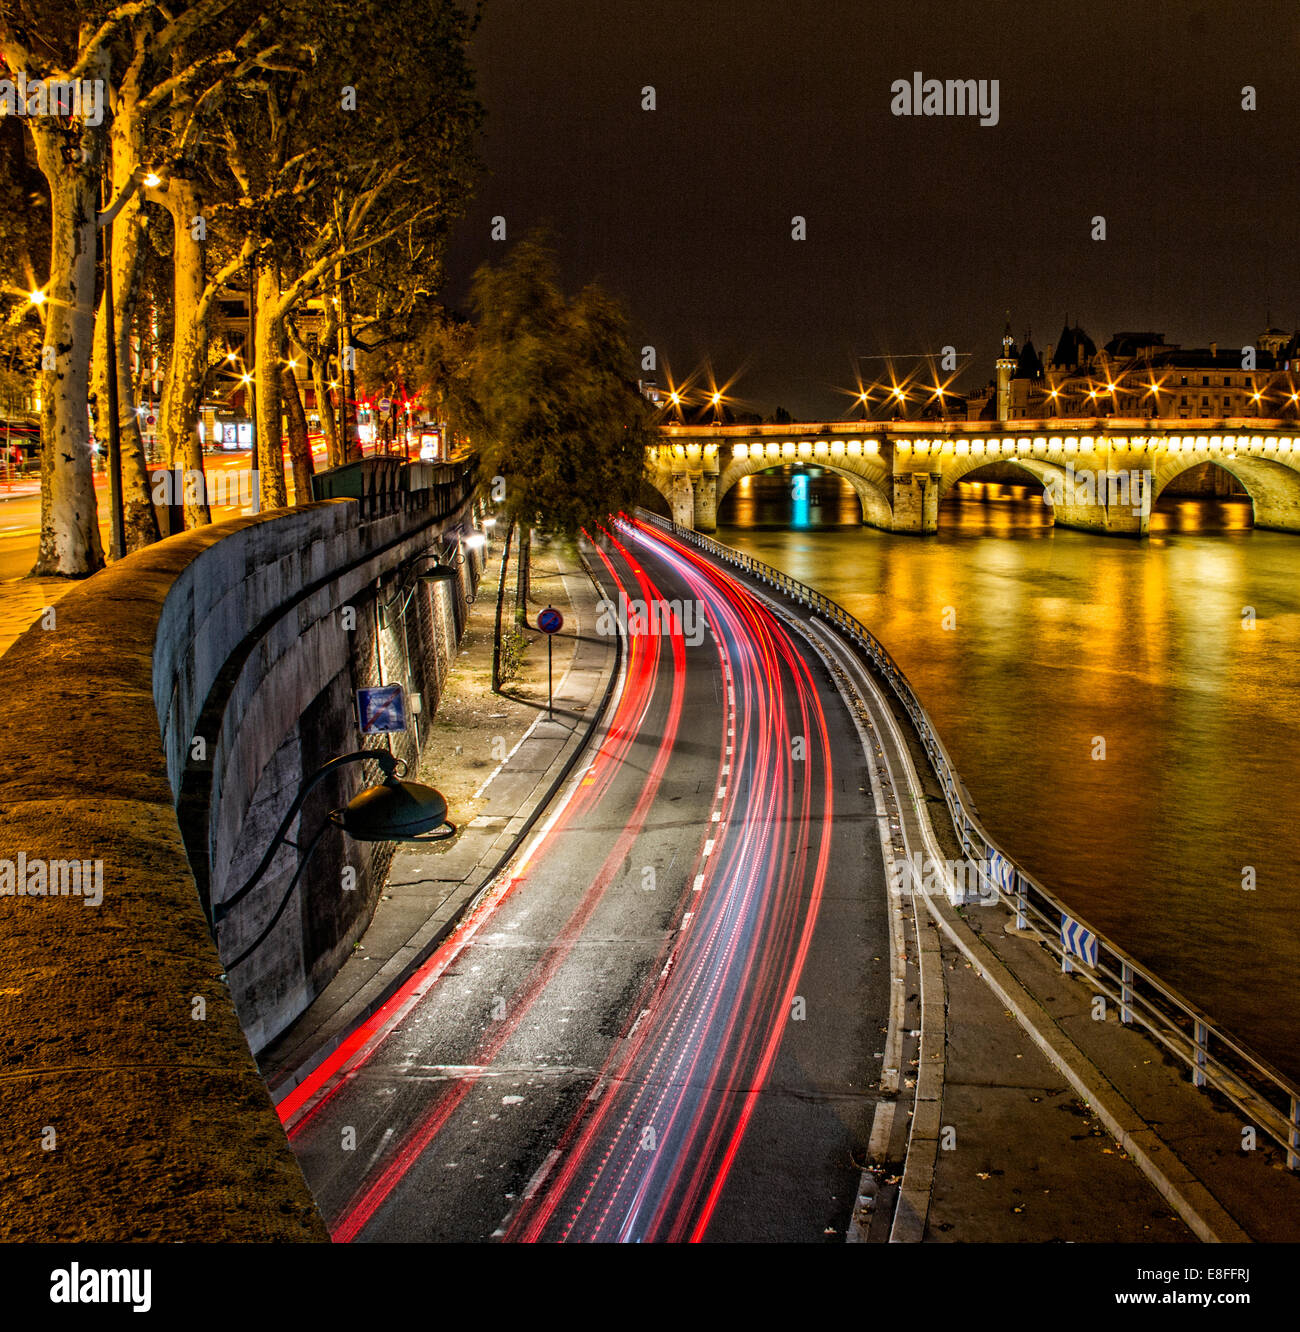 France, Paris, Riverbank by Seine river - Stock Image